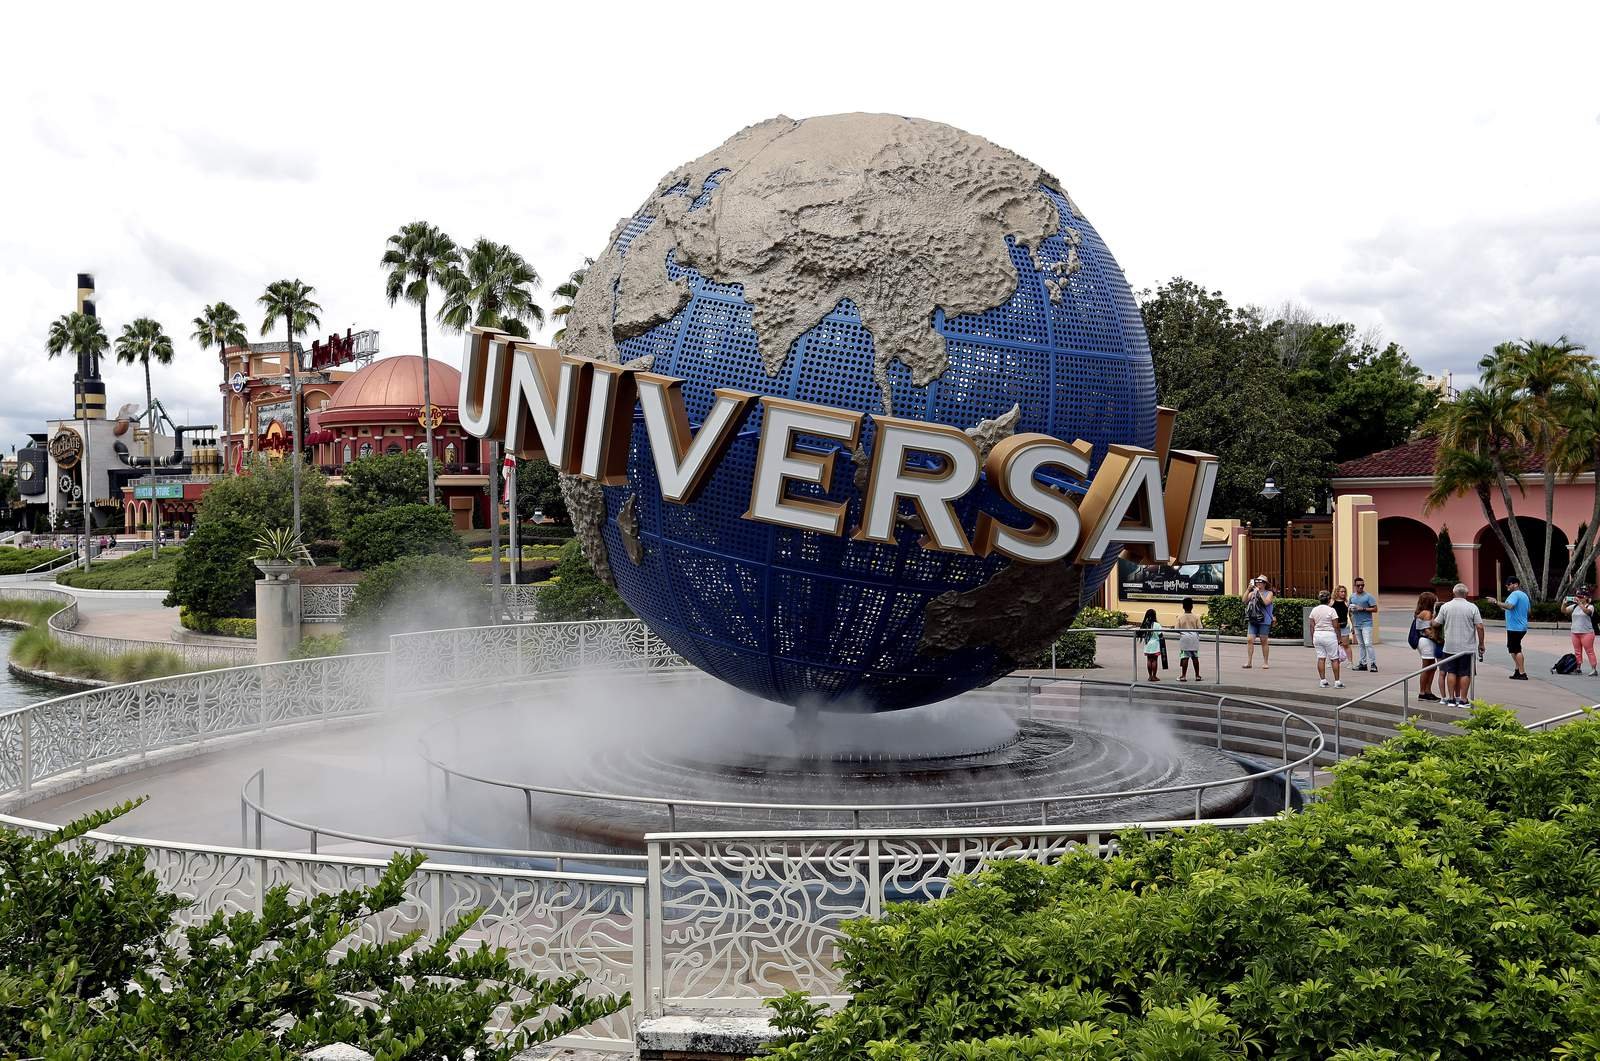 Get free access to Universal Orlando through Dec. 24 with purchase ...